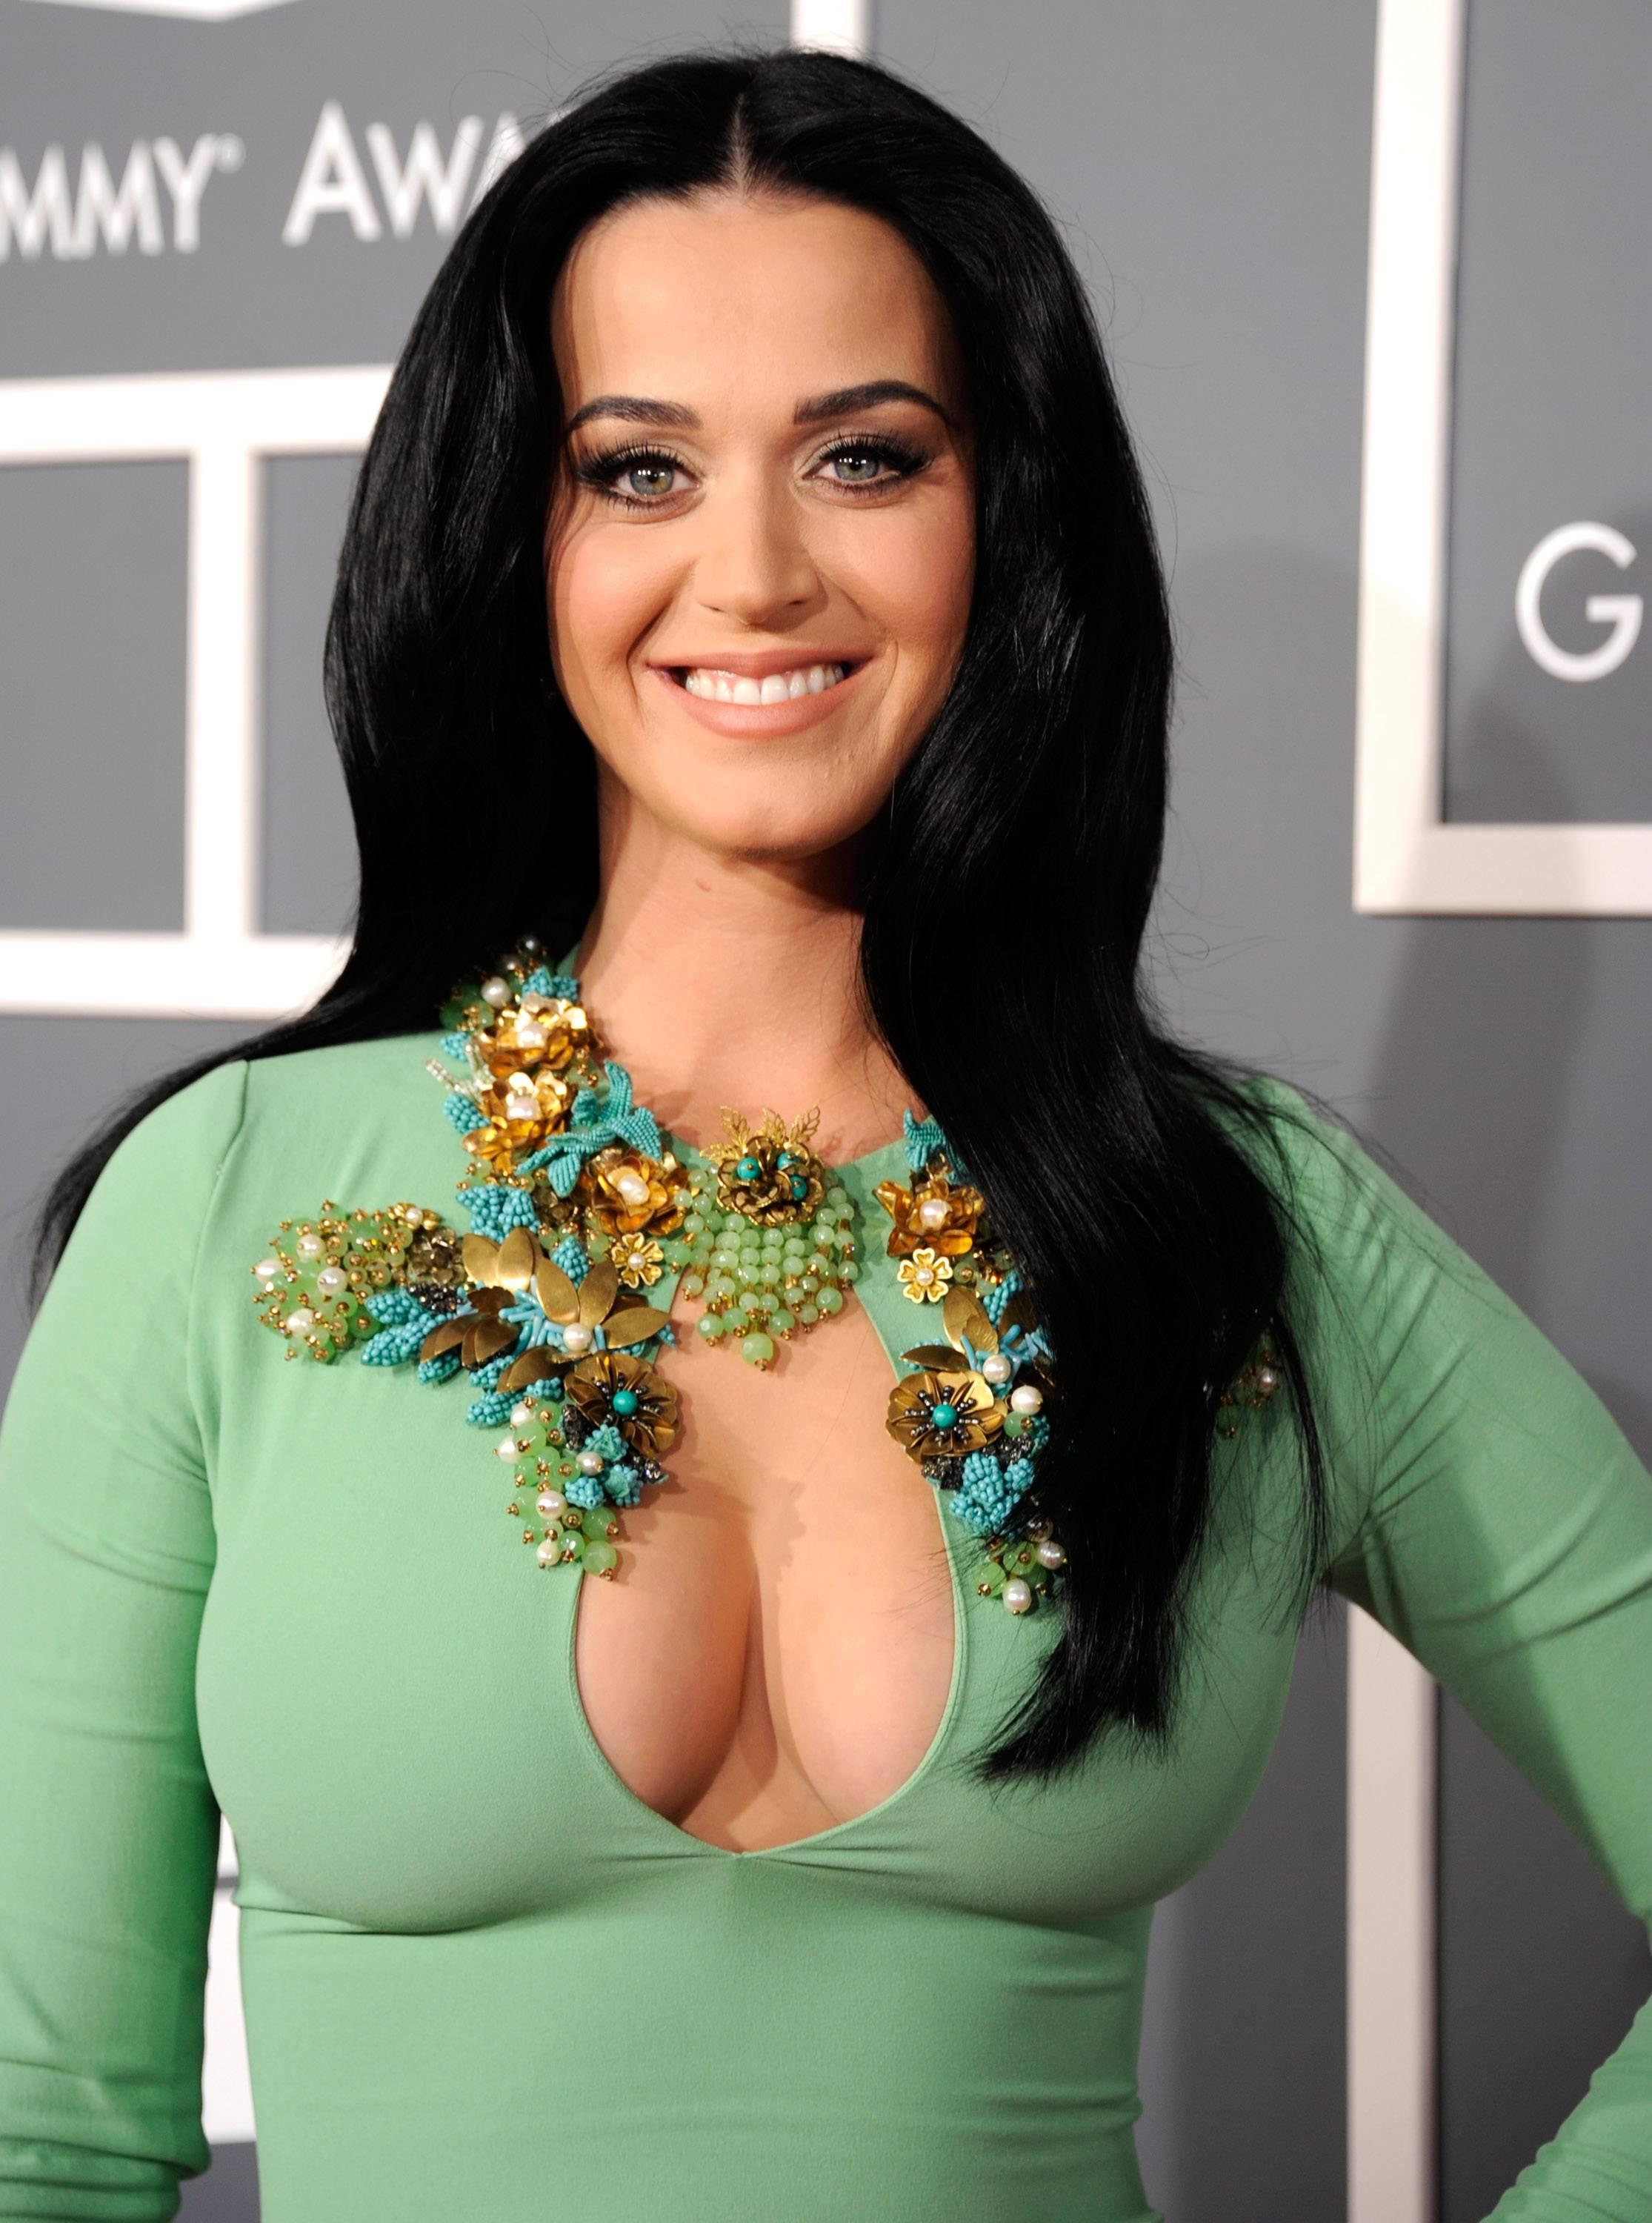 Was Katy perry cleavage casually